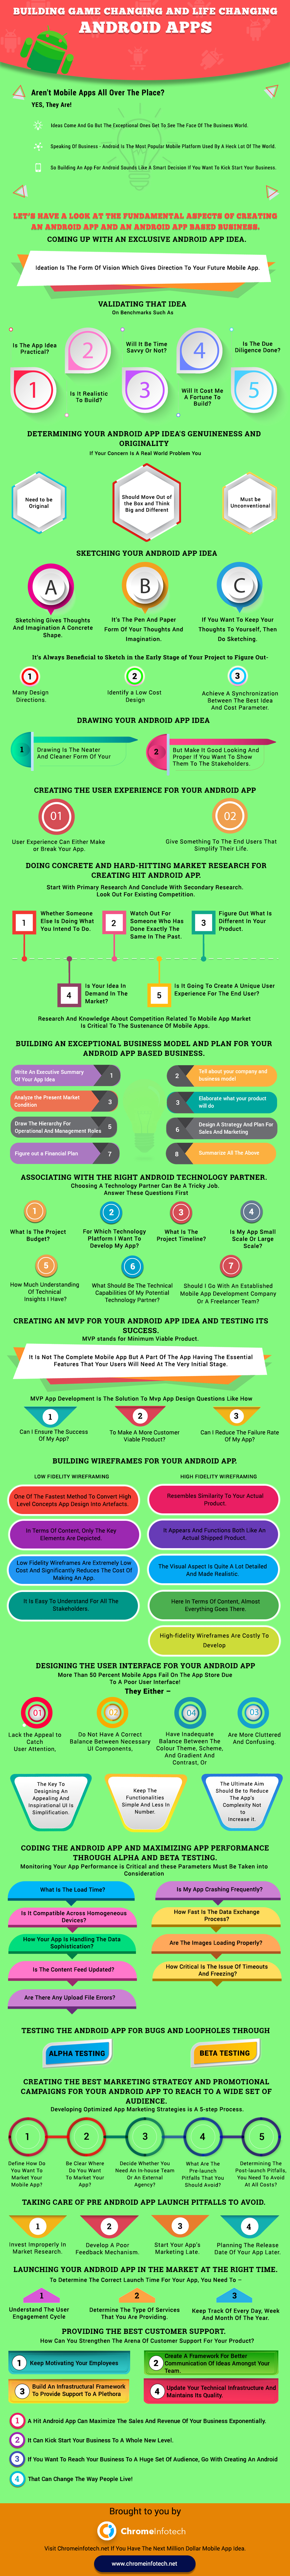 Android App Development Infographic